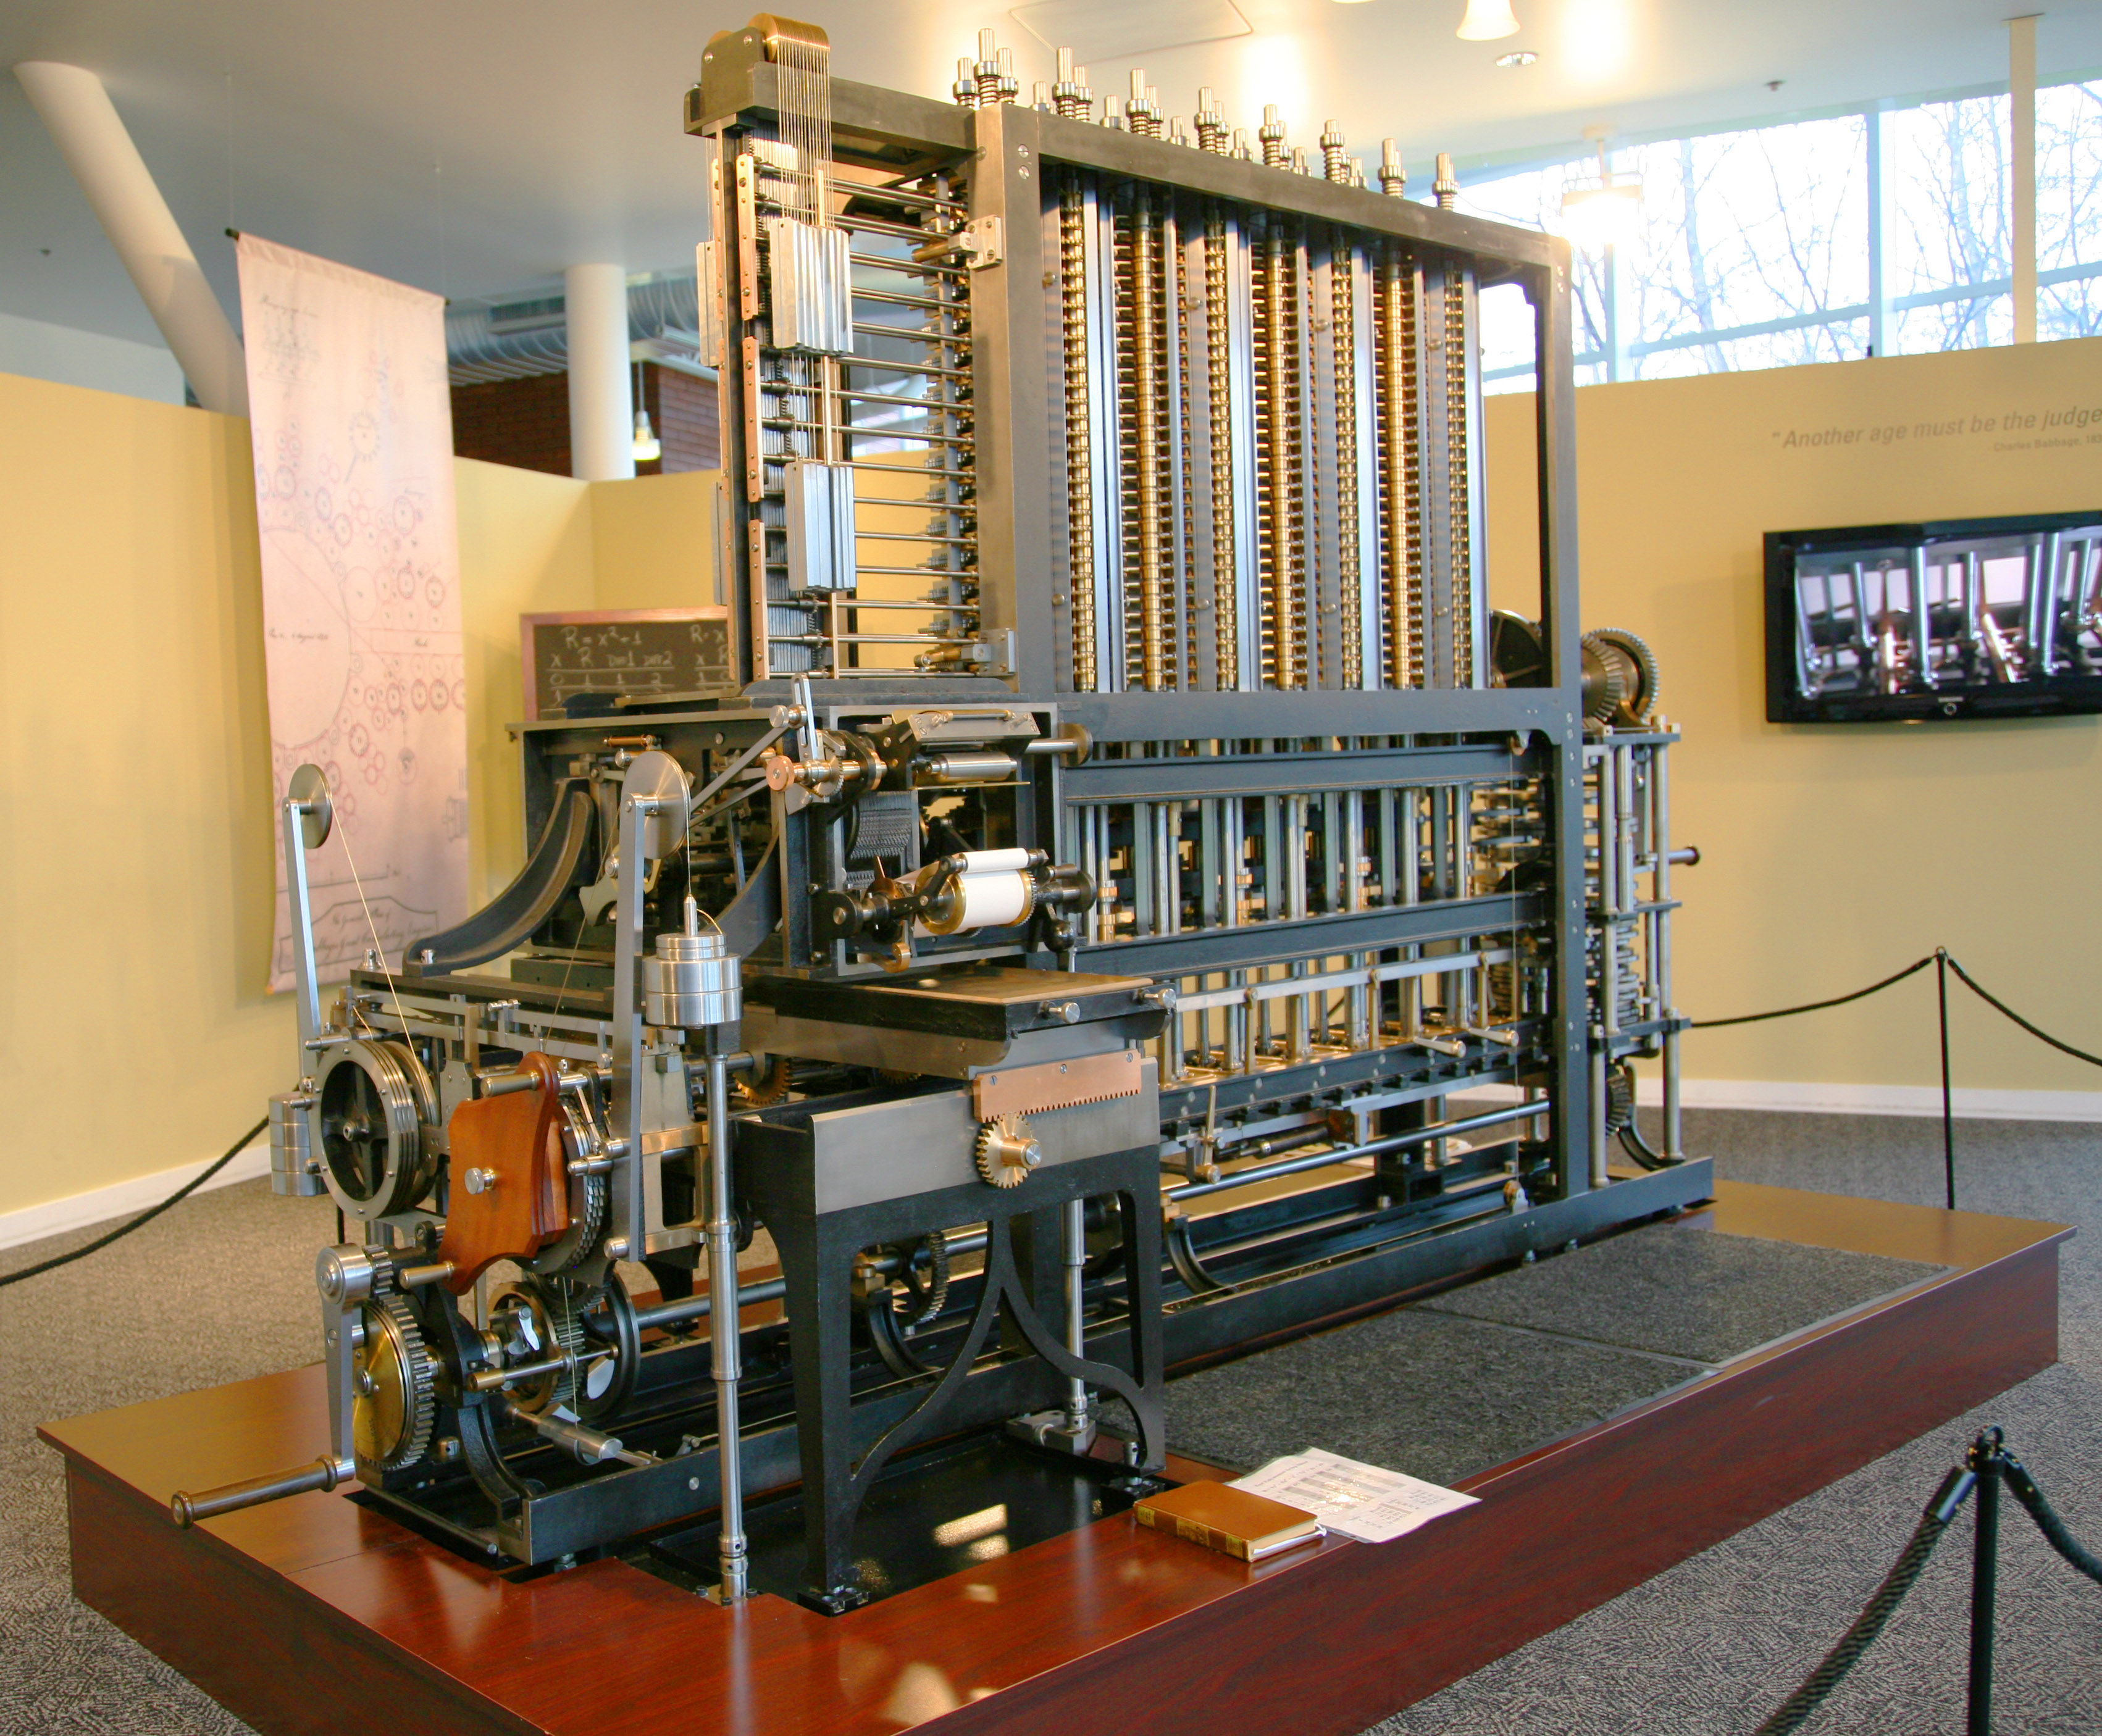 Charles Babbage (1791-1871) designed the first automatic computing engines. He invented computers but failed to build them. The first complete Babbage Engine was completed in London in 2002, 153 years